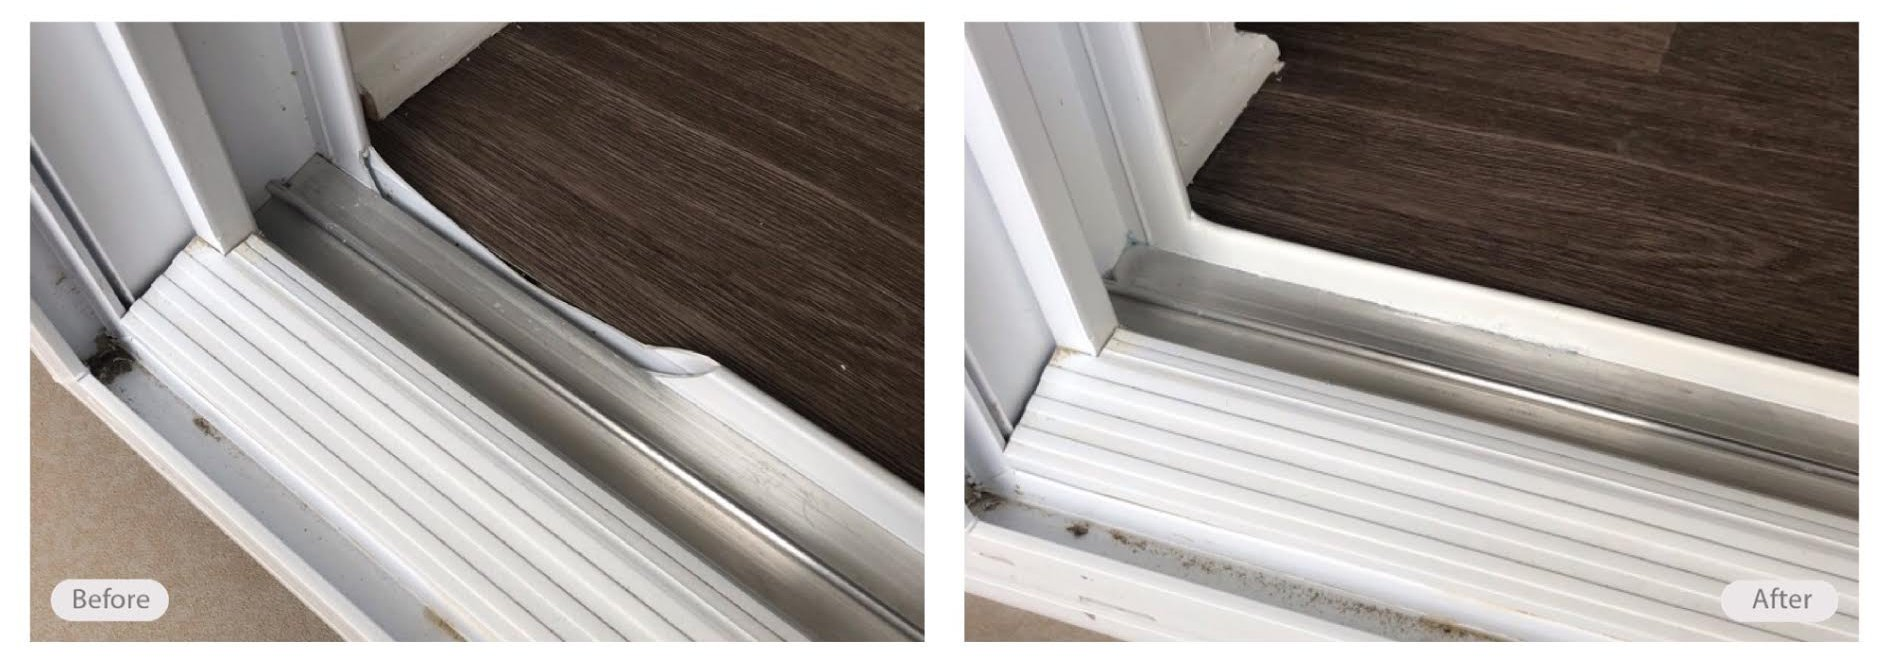 Plastic window casing repair done at a fraction of the cost of replacement